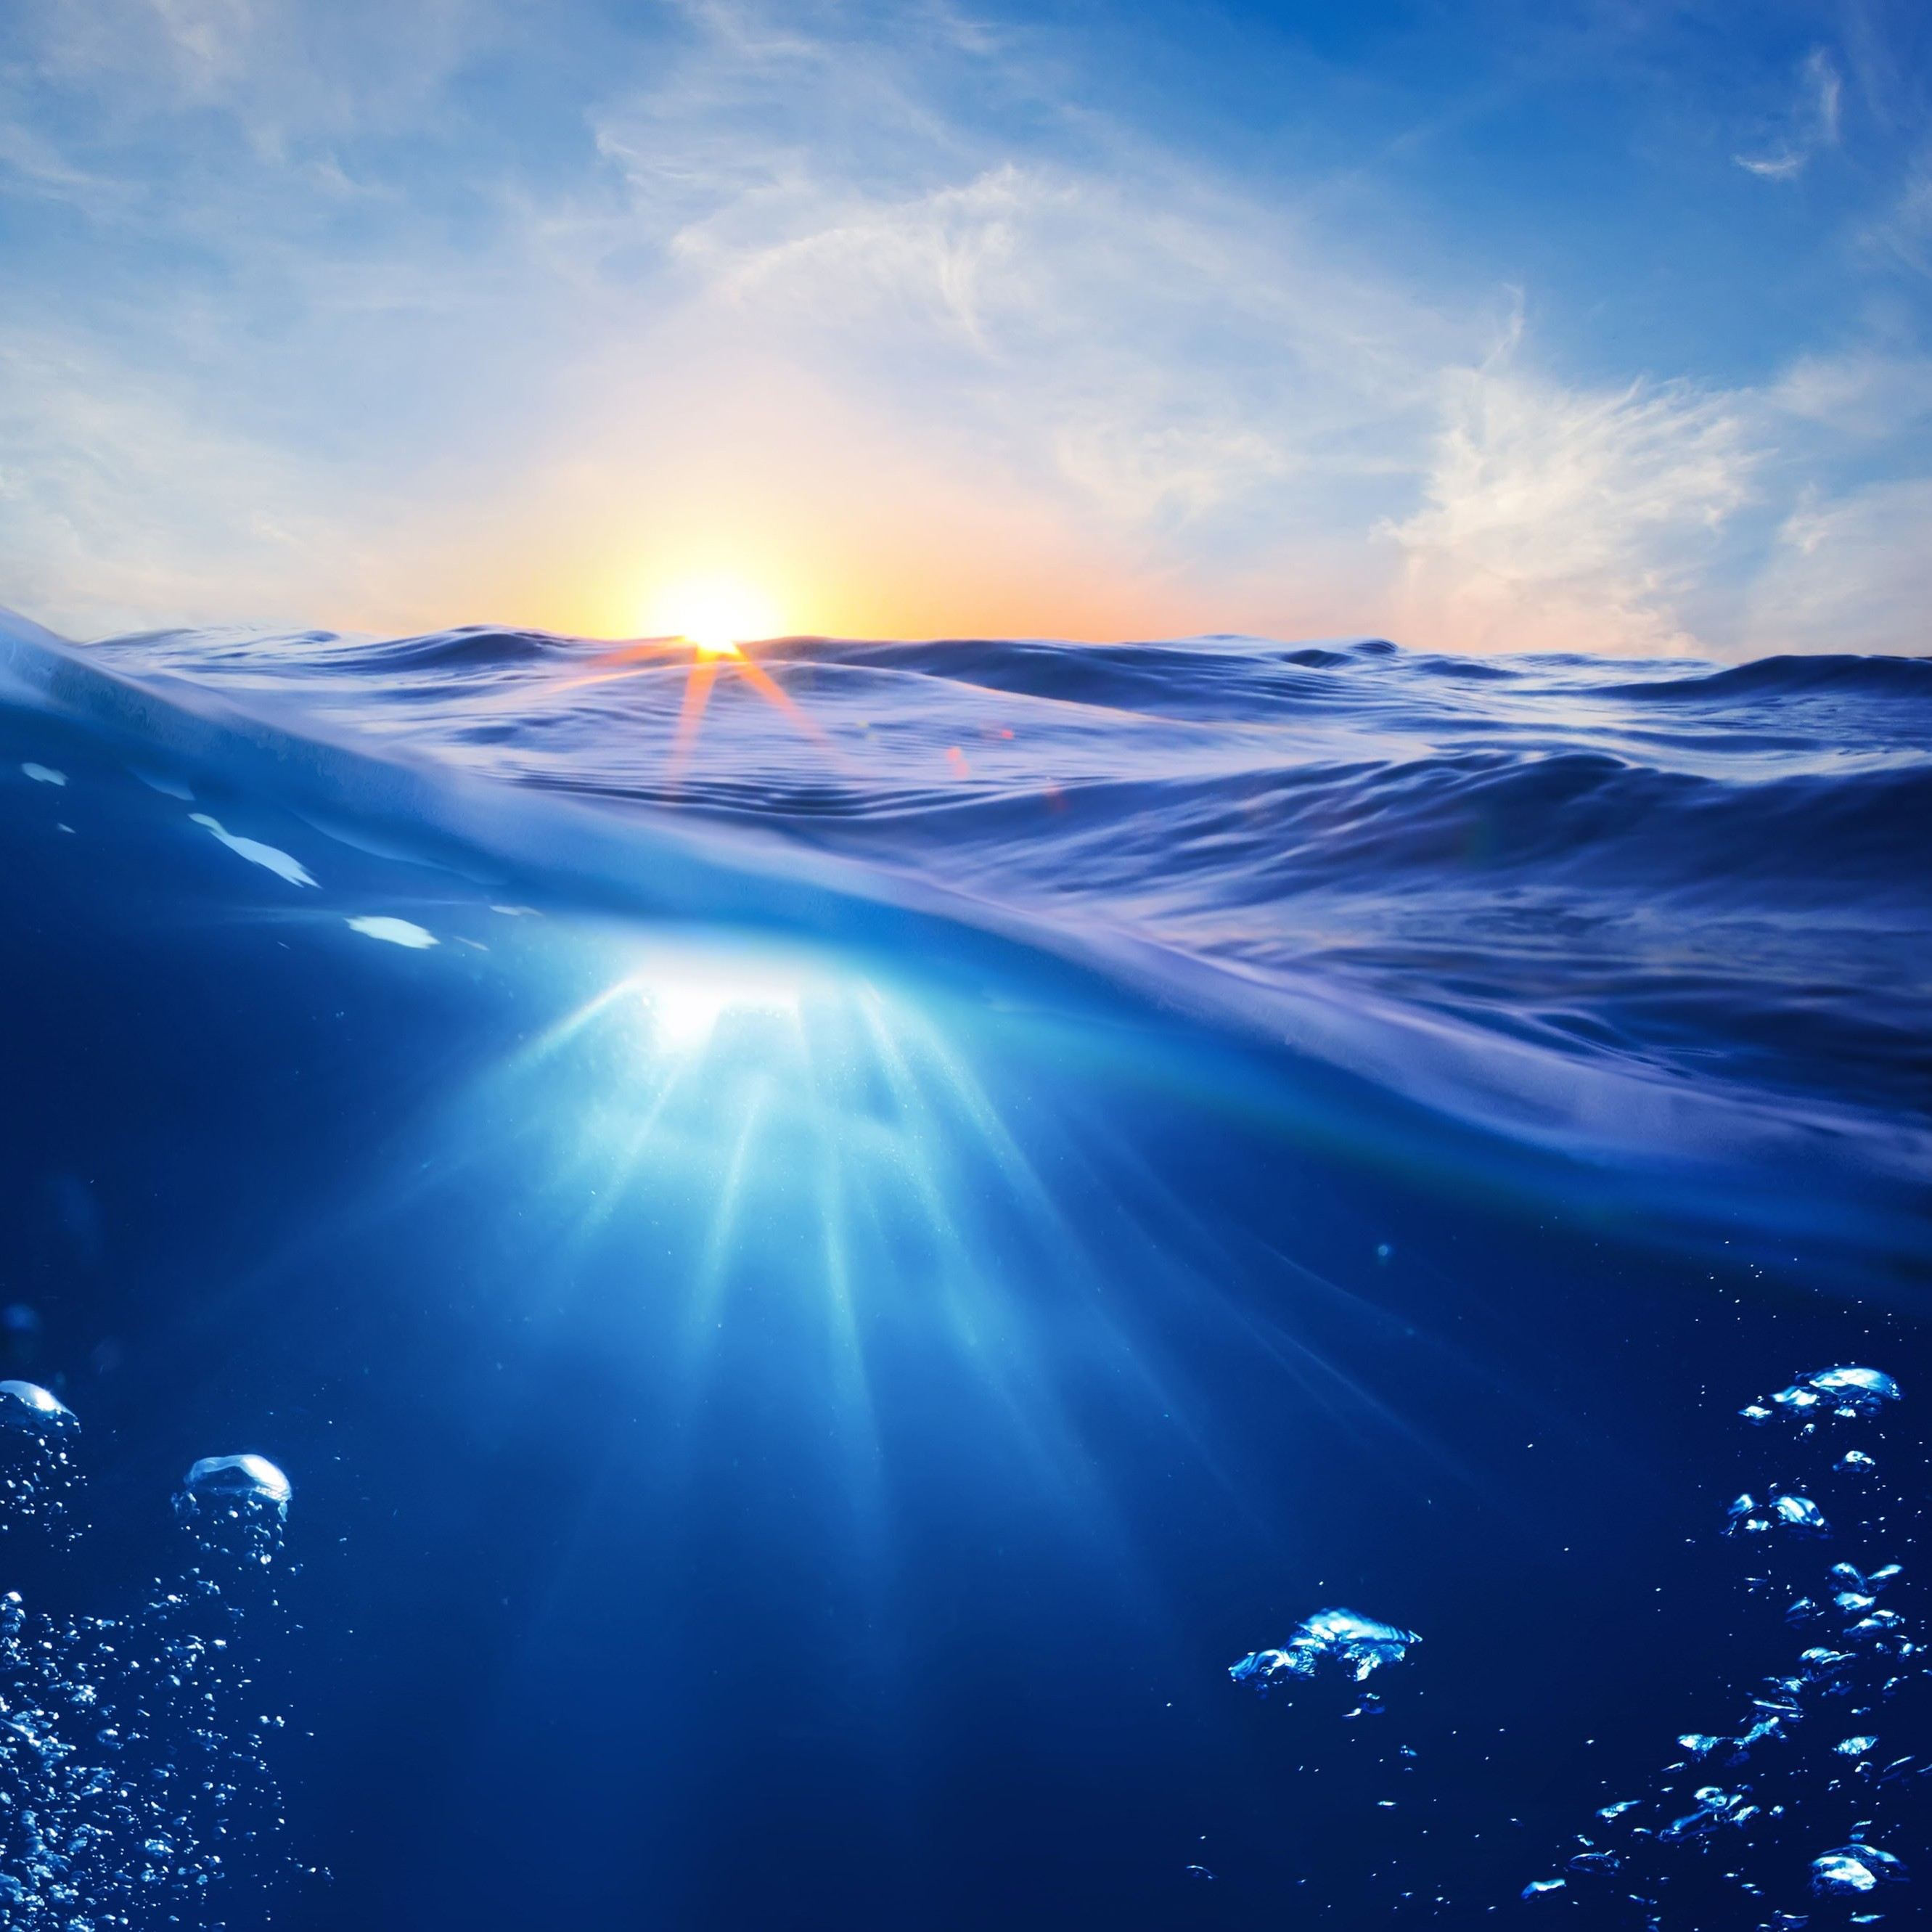 Sunrise Half Underwater Wallpaper for Apple iPhone 6 Plus